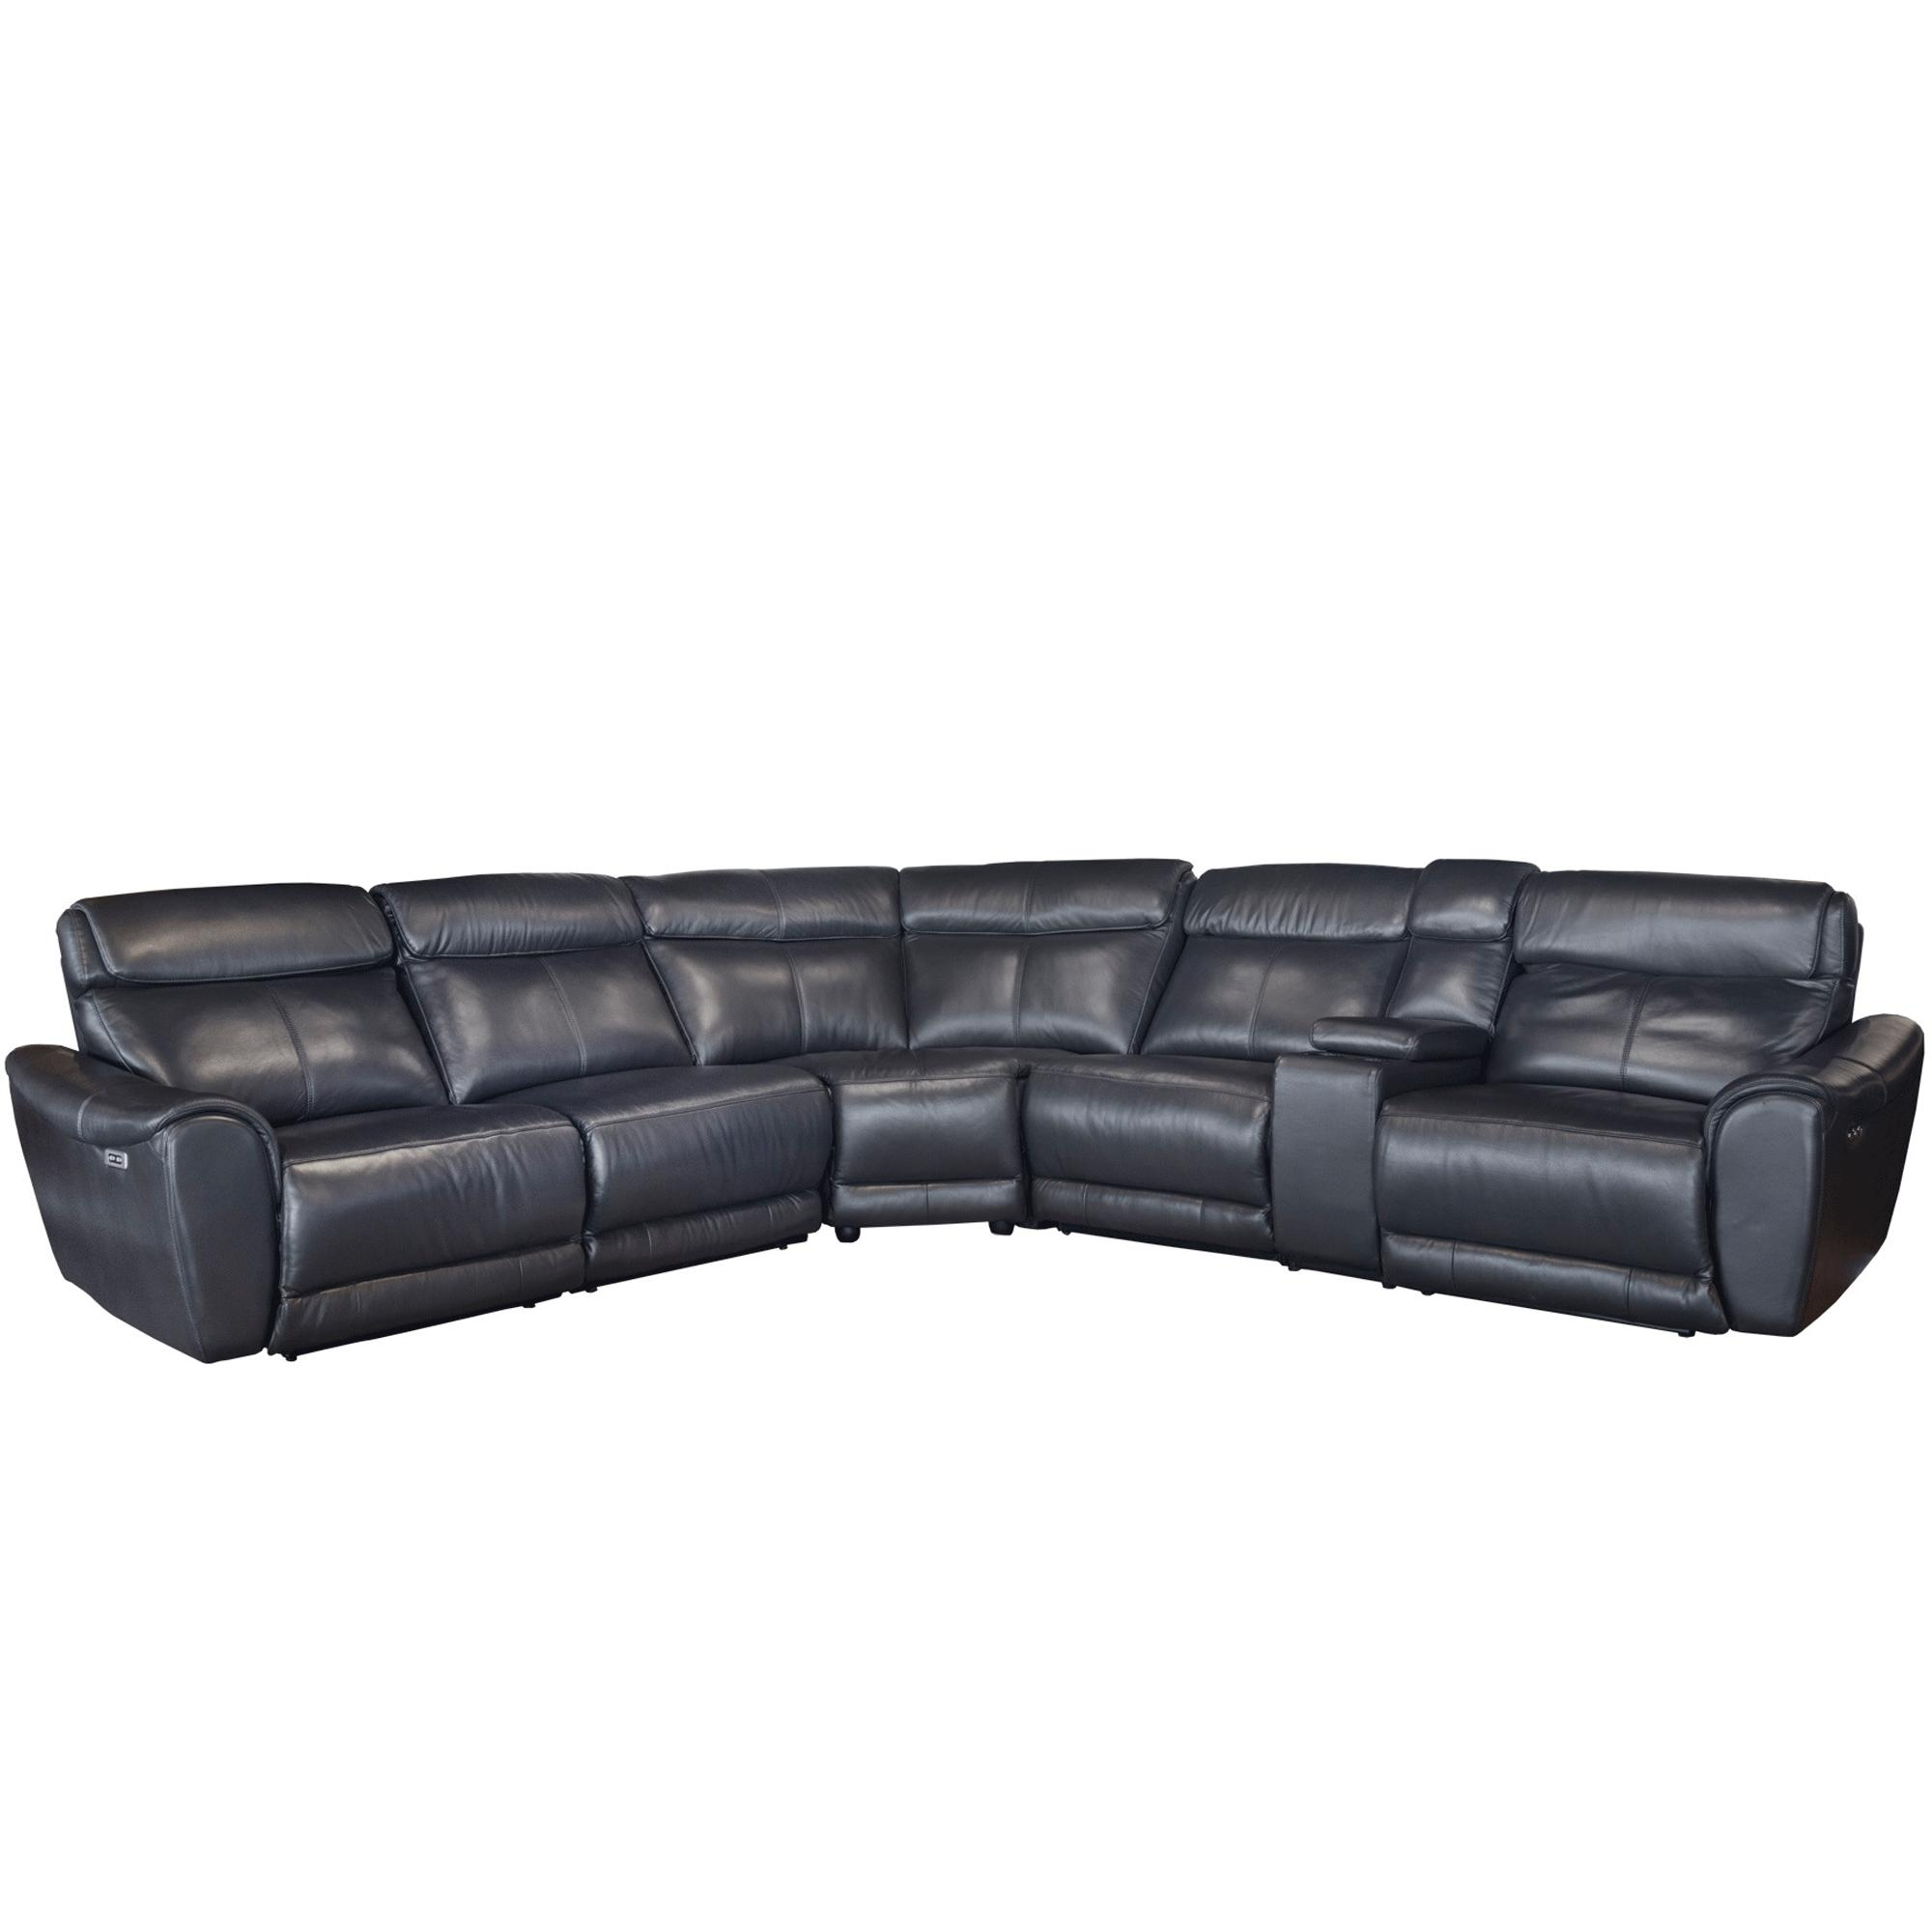 Sectional Sofas | Sectional Couches – Bernie & Phyl's Furniture With Regard To 6 Piece Sectional Sofas Couches (View 14 of 20)